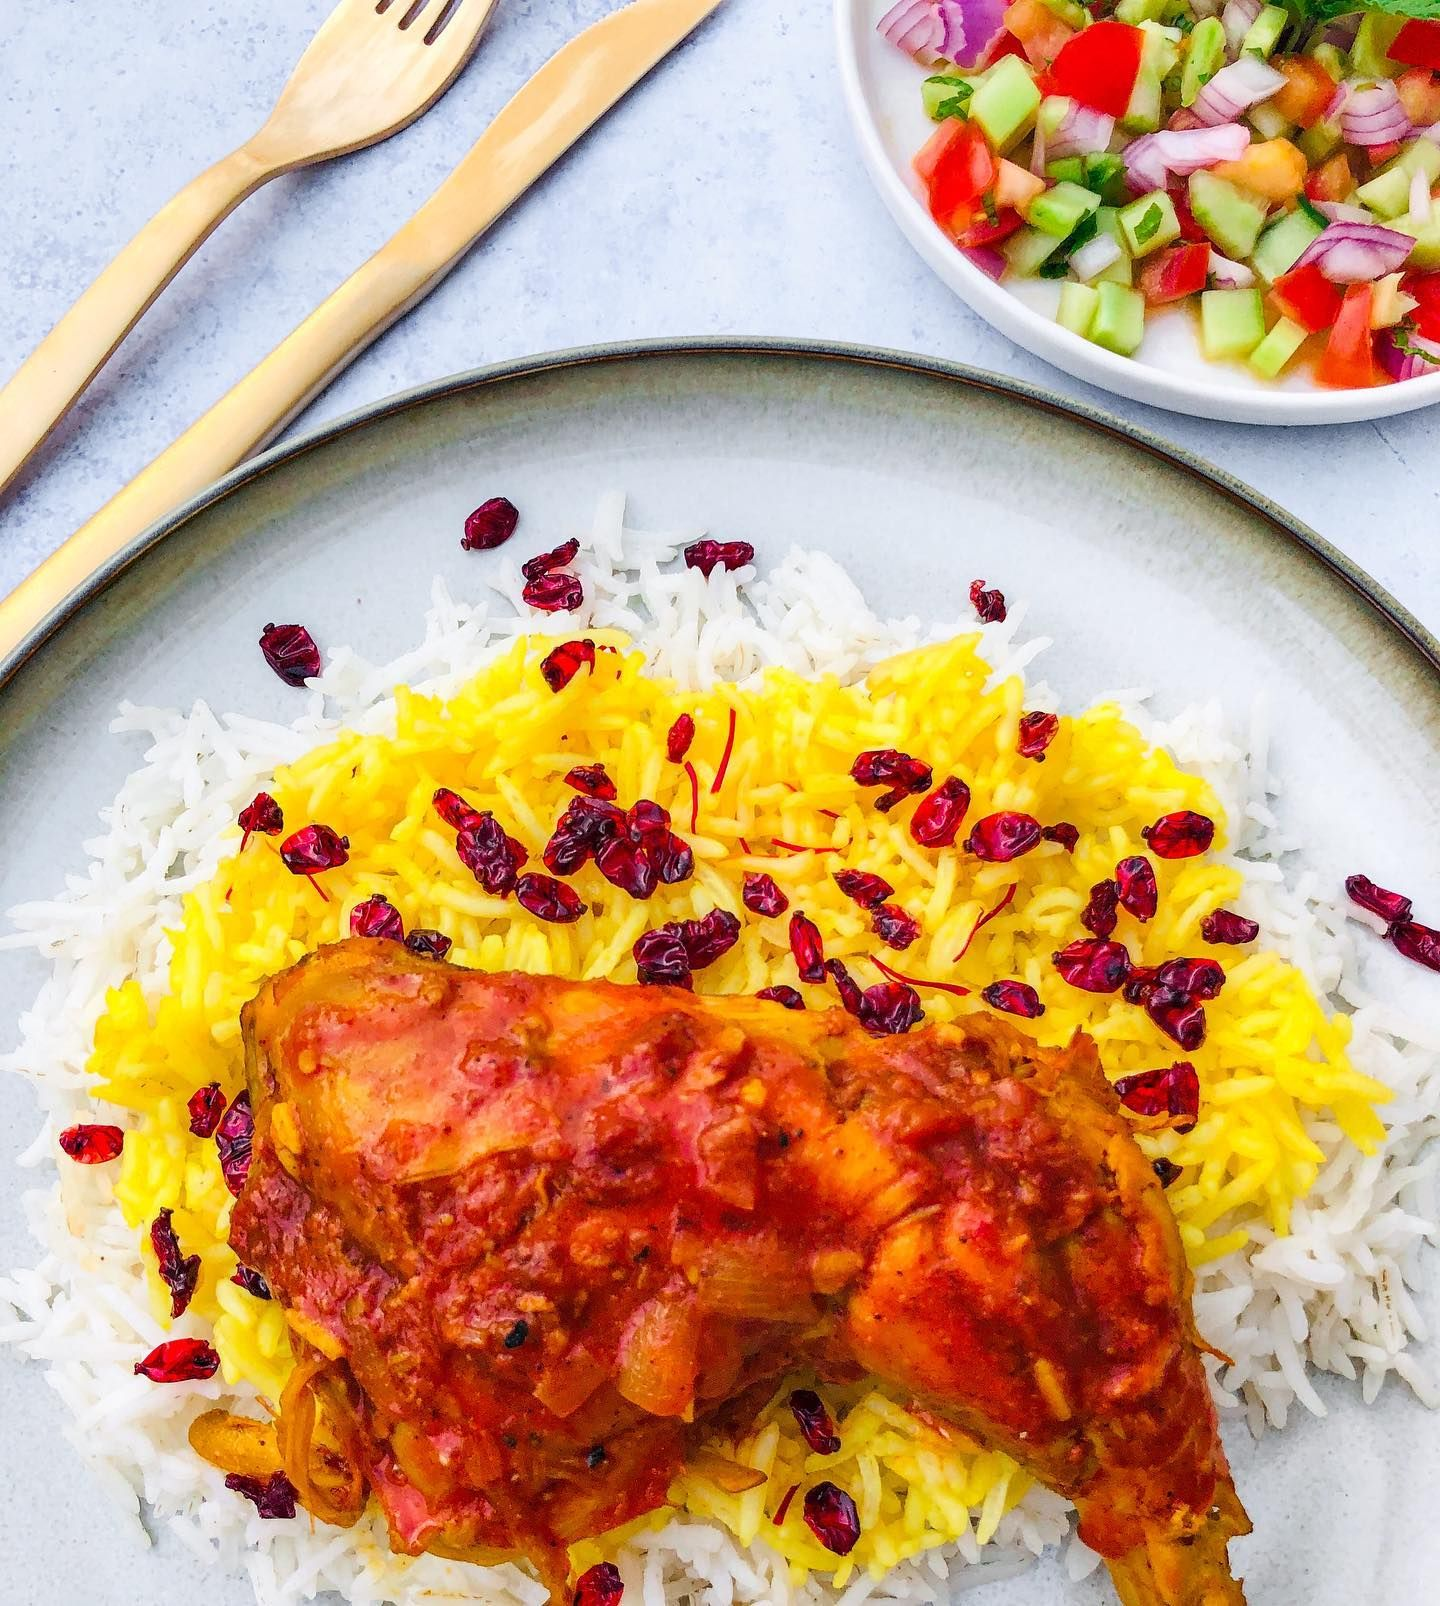 Today We Re Traversing Over Into Persia With This Zereshk Polo Ba Morgh Most Of You Already Know My Love Affair With Persi Food Persian Food Cravings